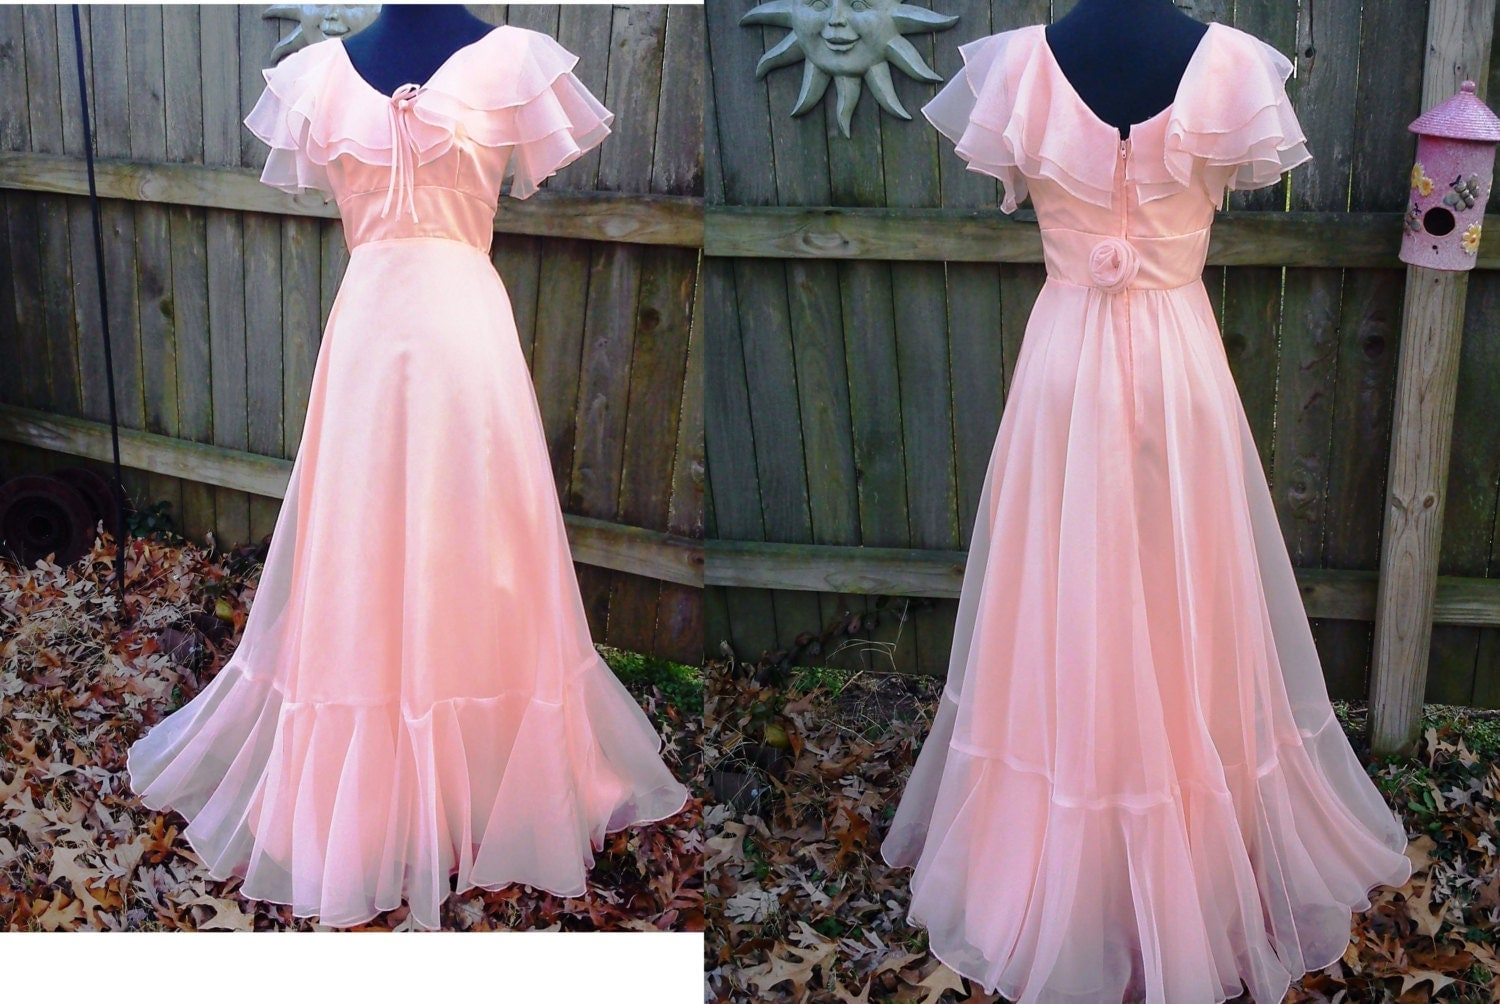 70s Prom Dress By JCP In Peach Chiffon Ruffles Estimated Size